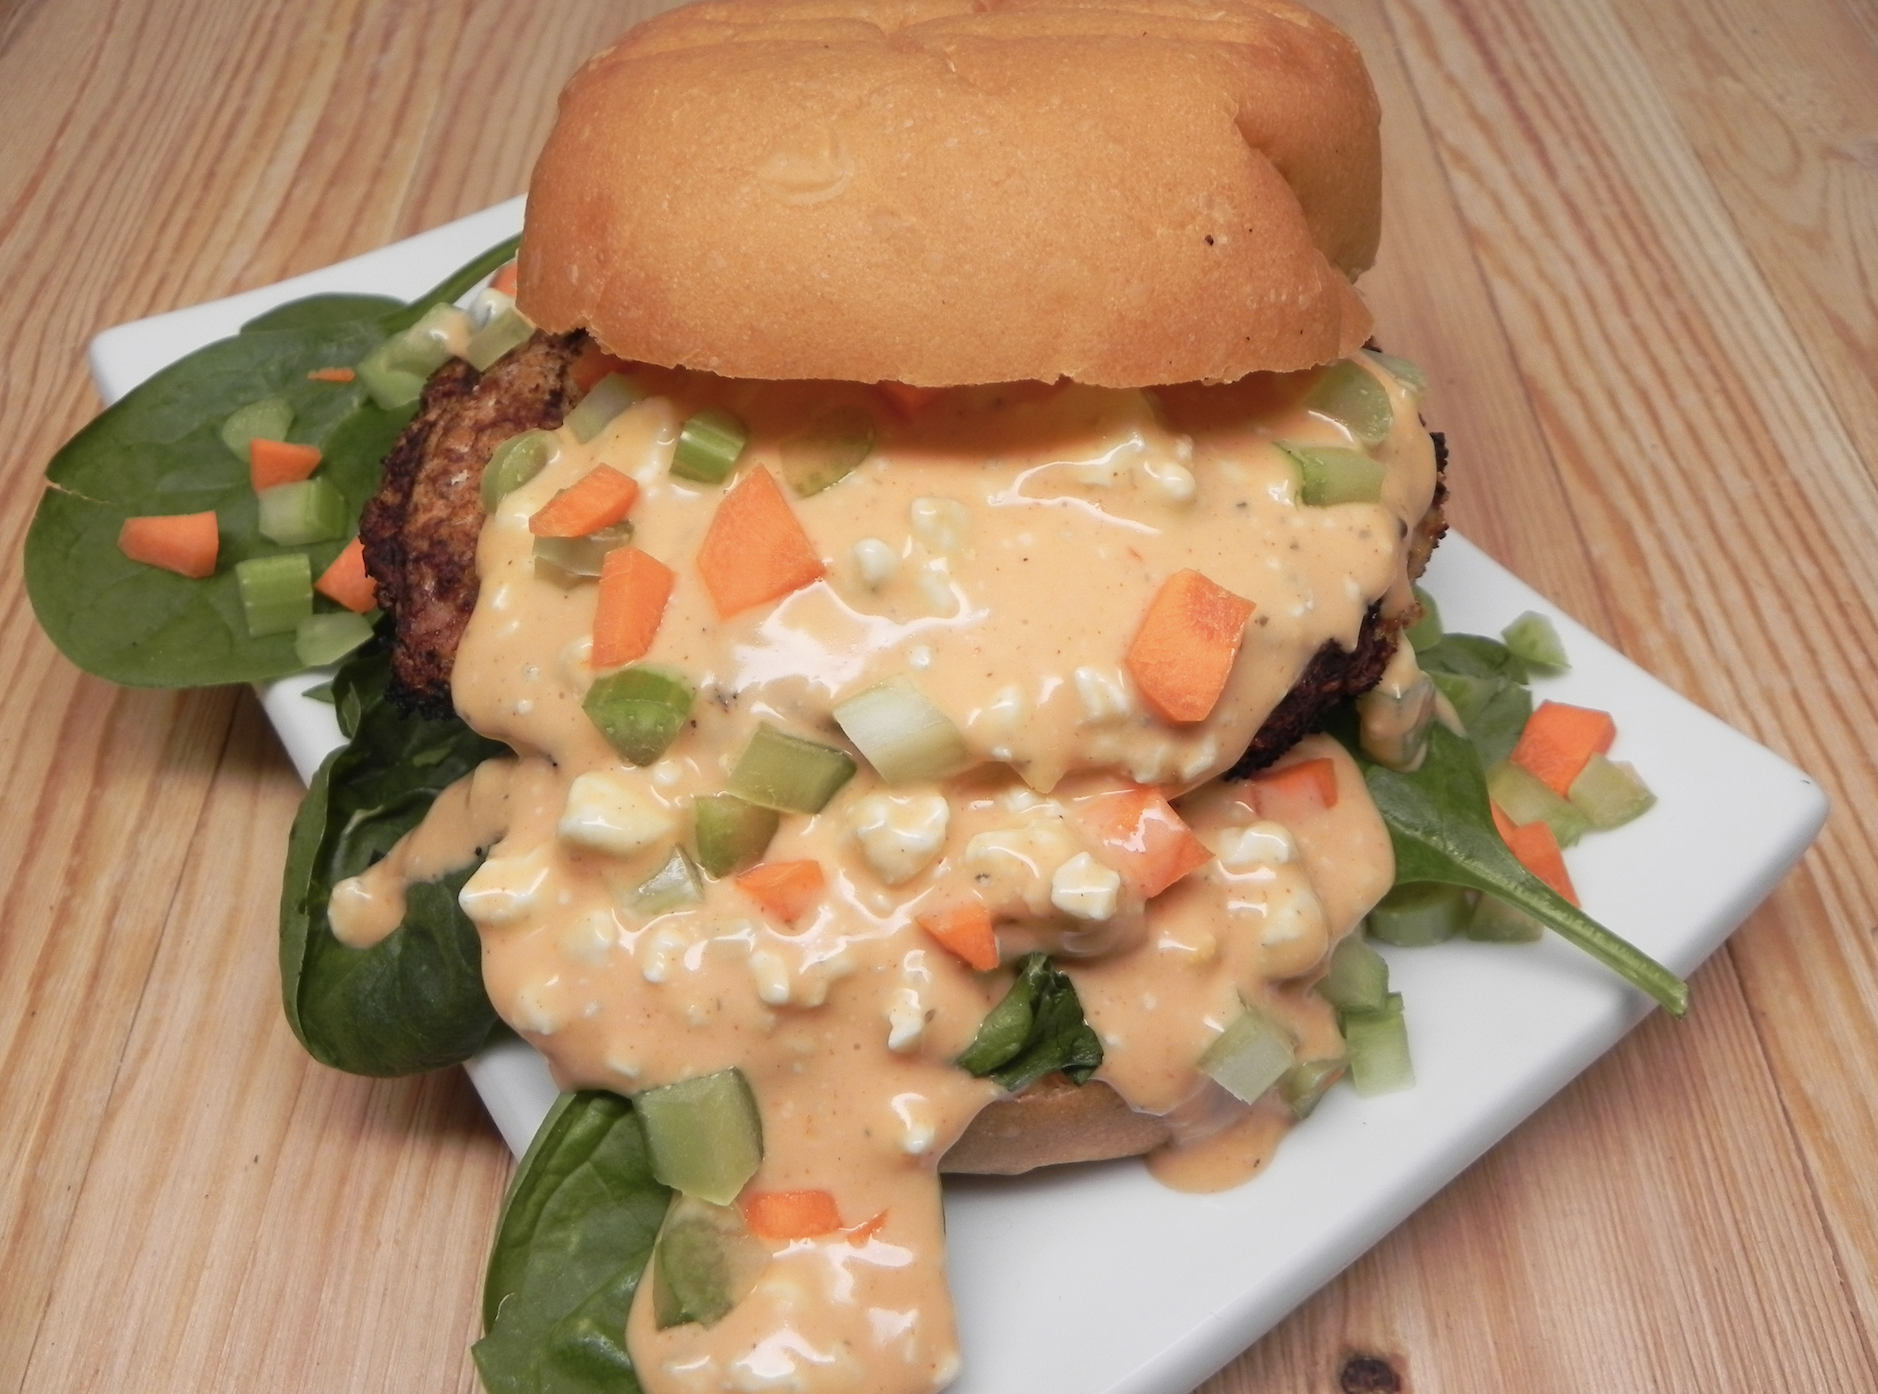 stuffed burger with buffalo sauce and peppers